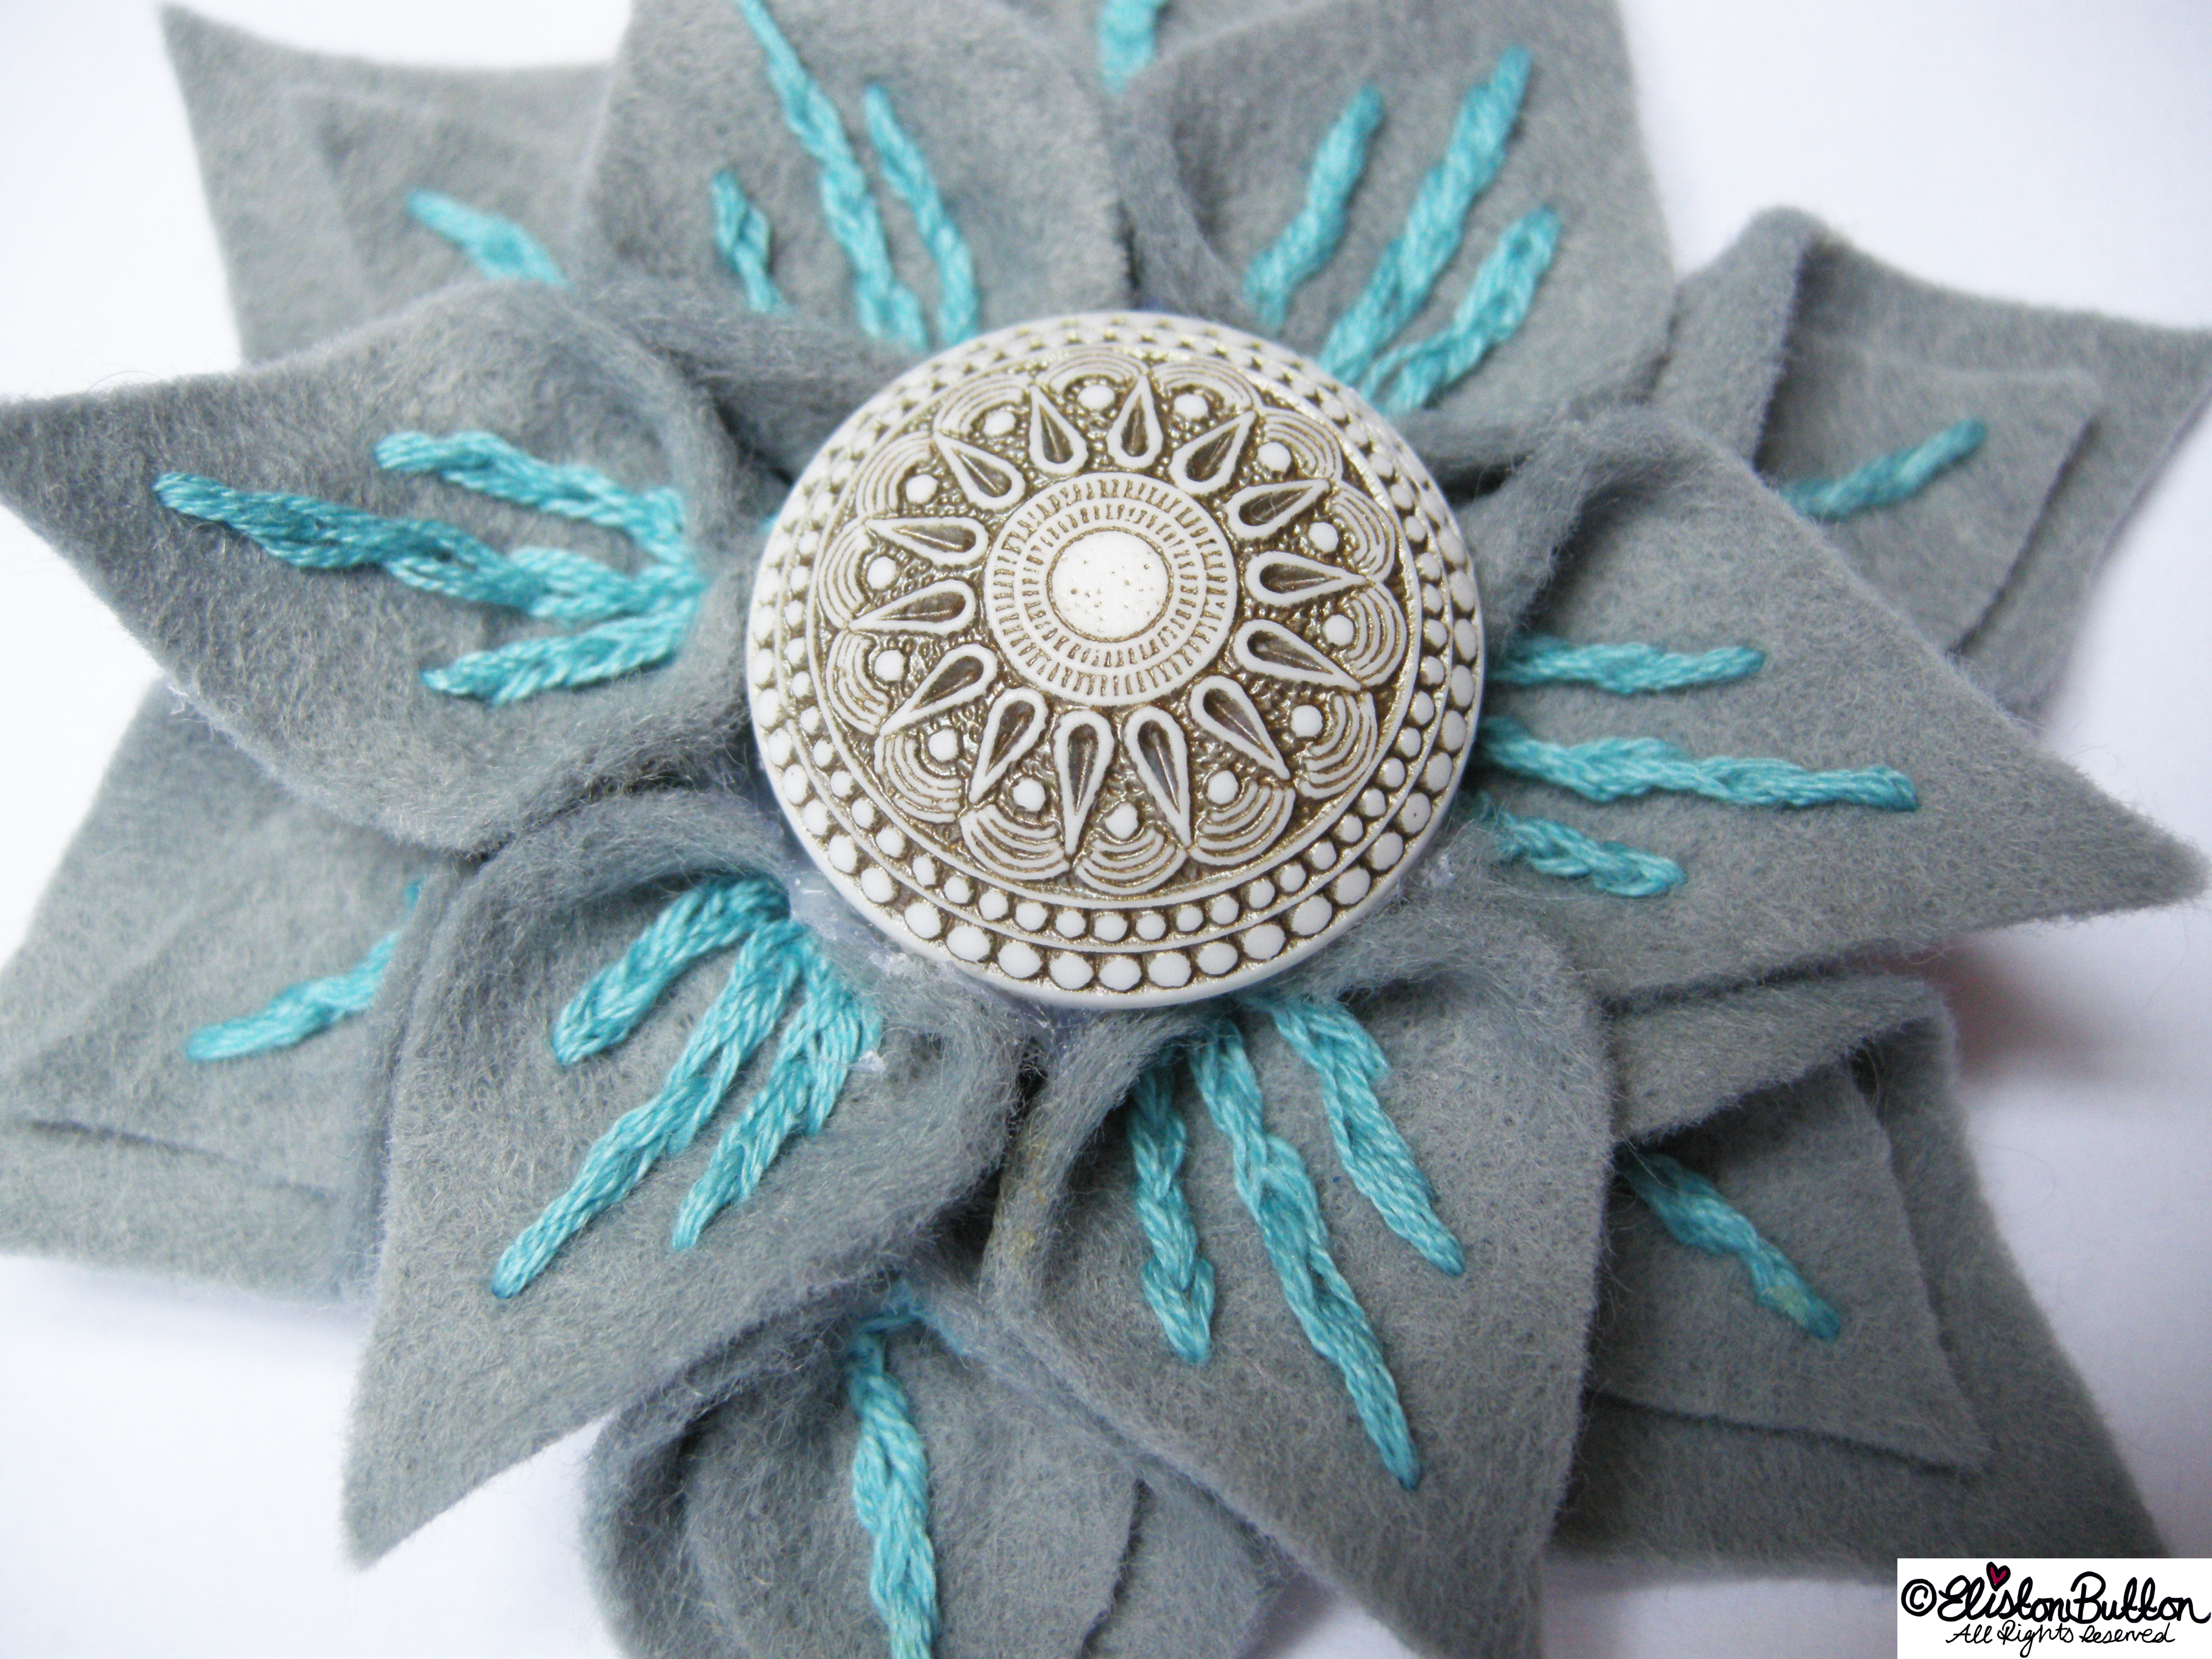 Slate and Seafoam Embroidered Felt Flower Brooch by Eliston Button Up Close - 27 Before 27 - Slate and Seafoam at www.elistonbutton.com - Eliston Button - That Crafty Kid – Art, Design, Craft & Adventure.